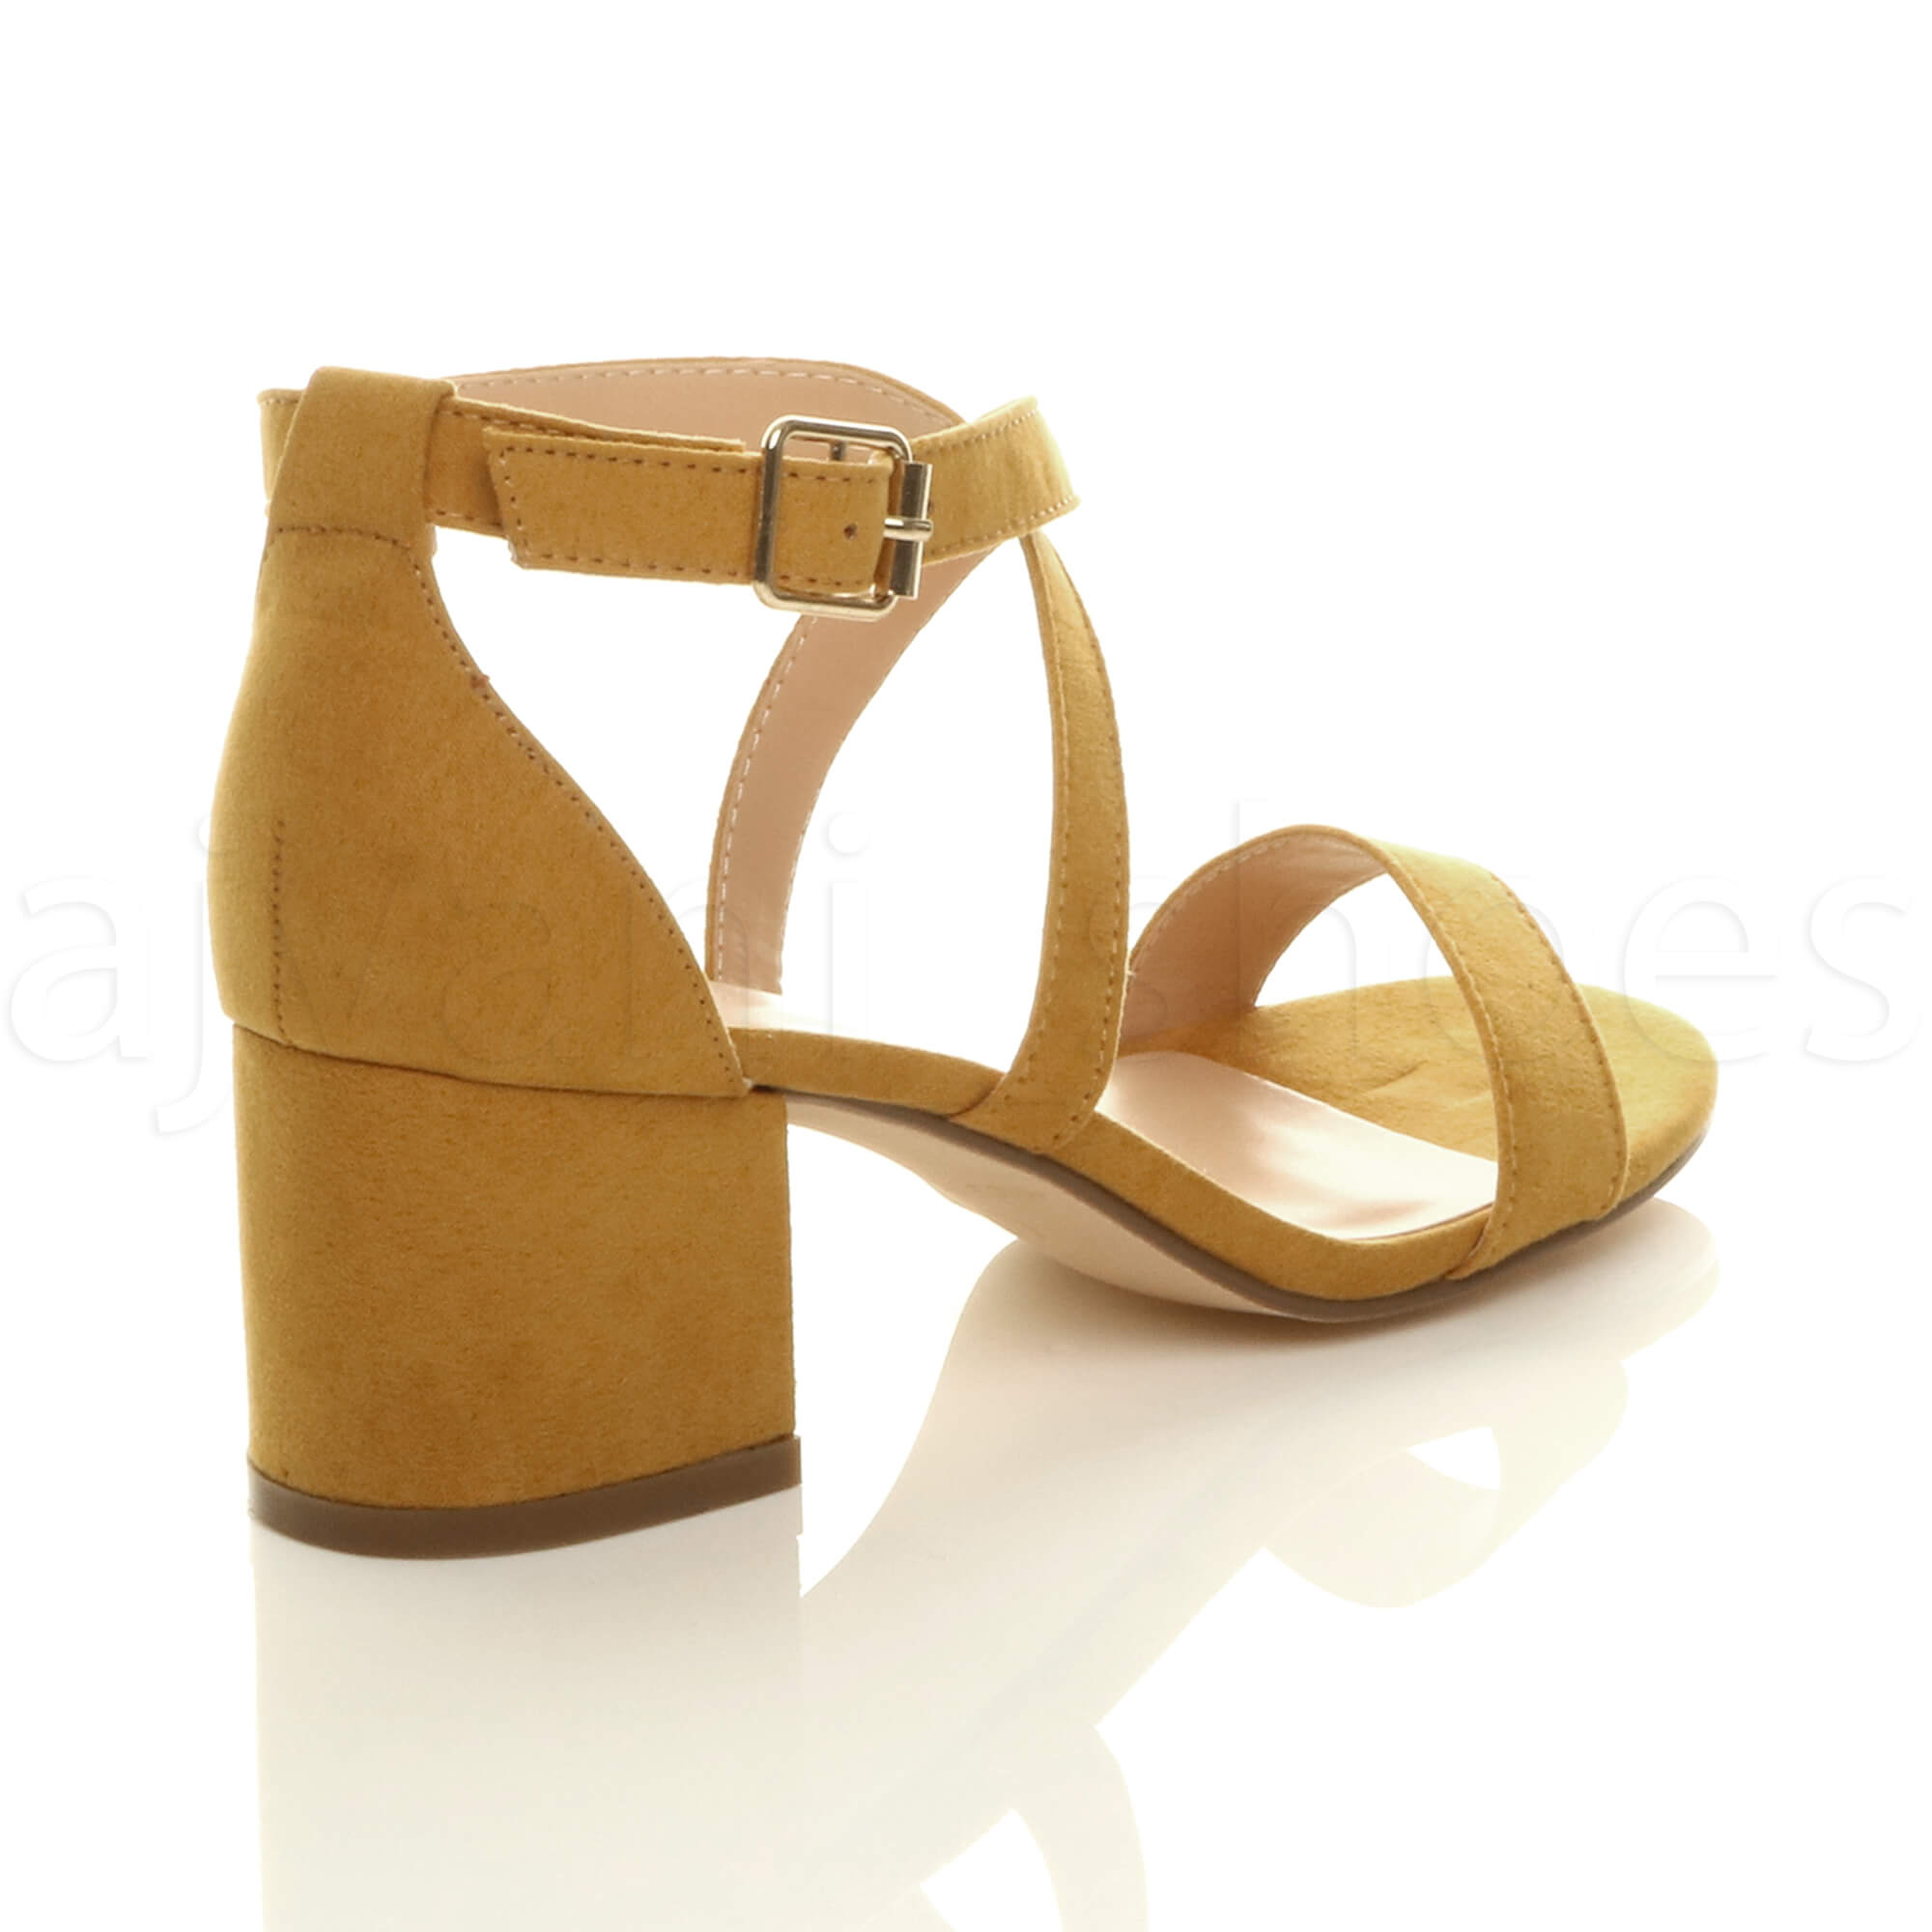 WOMENS-LADIES-MID-LOW-BLOCK-HEEL-CROSS-STRAPS-PARTY-STRAPPY-SANDALS-SHOES-SIZE thumbnail 44